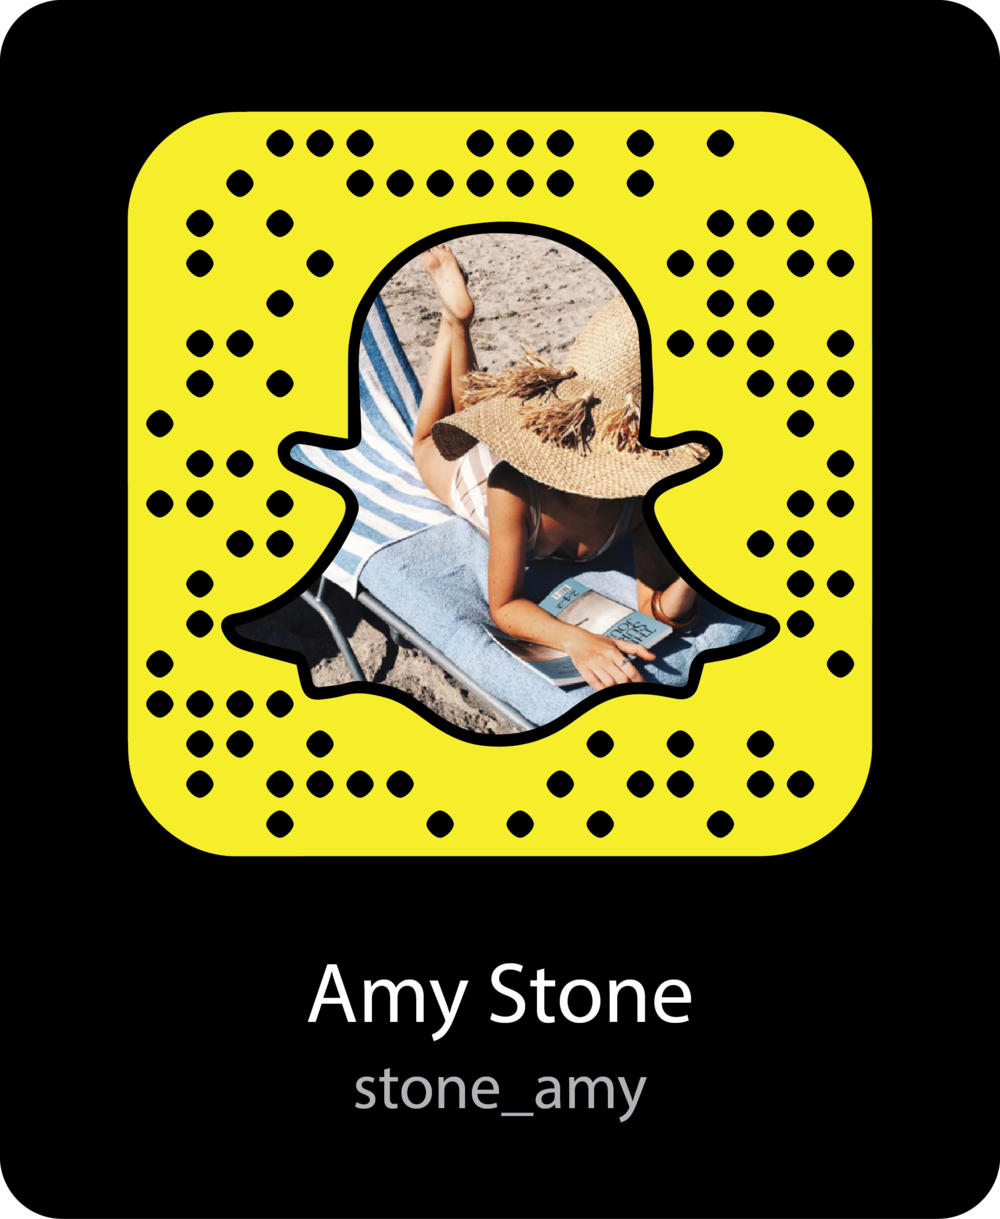 stone_amy-Travel-snapchat-snapcode.png